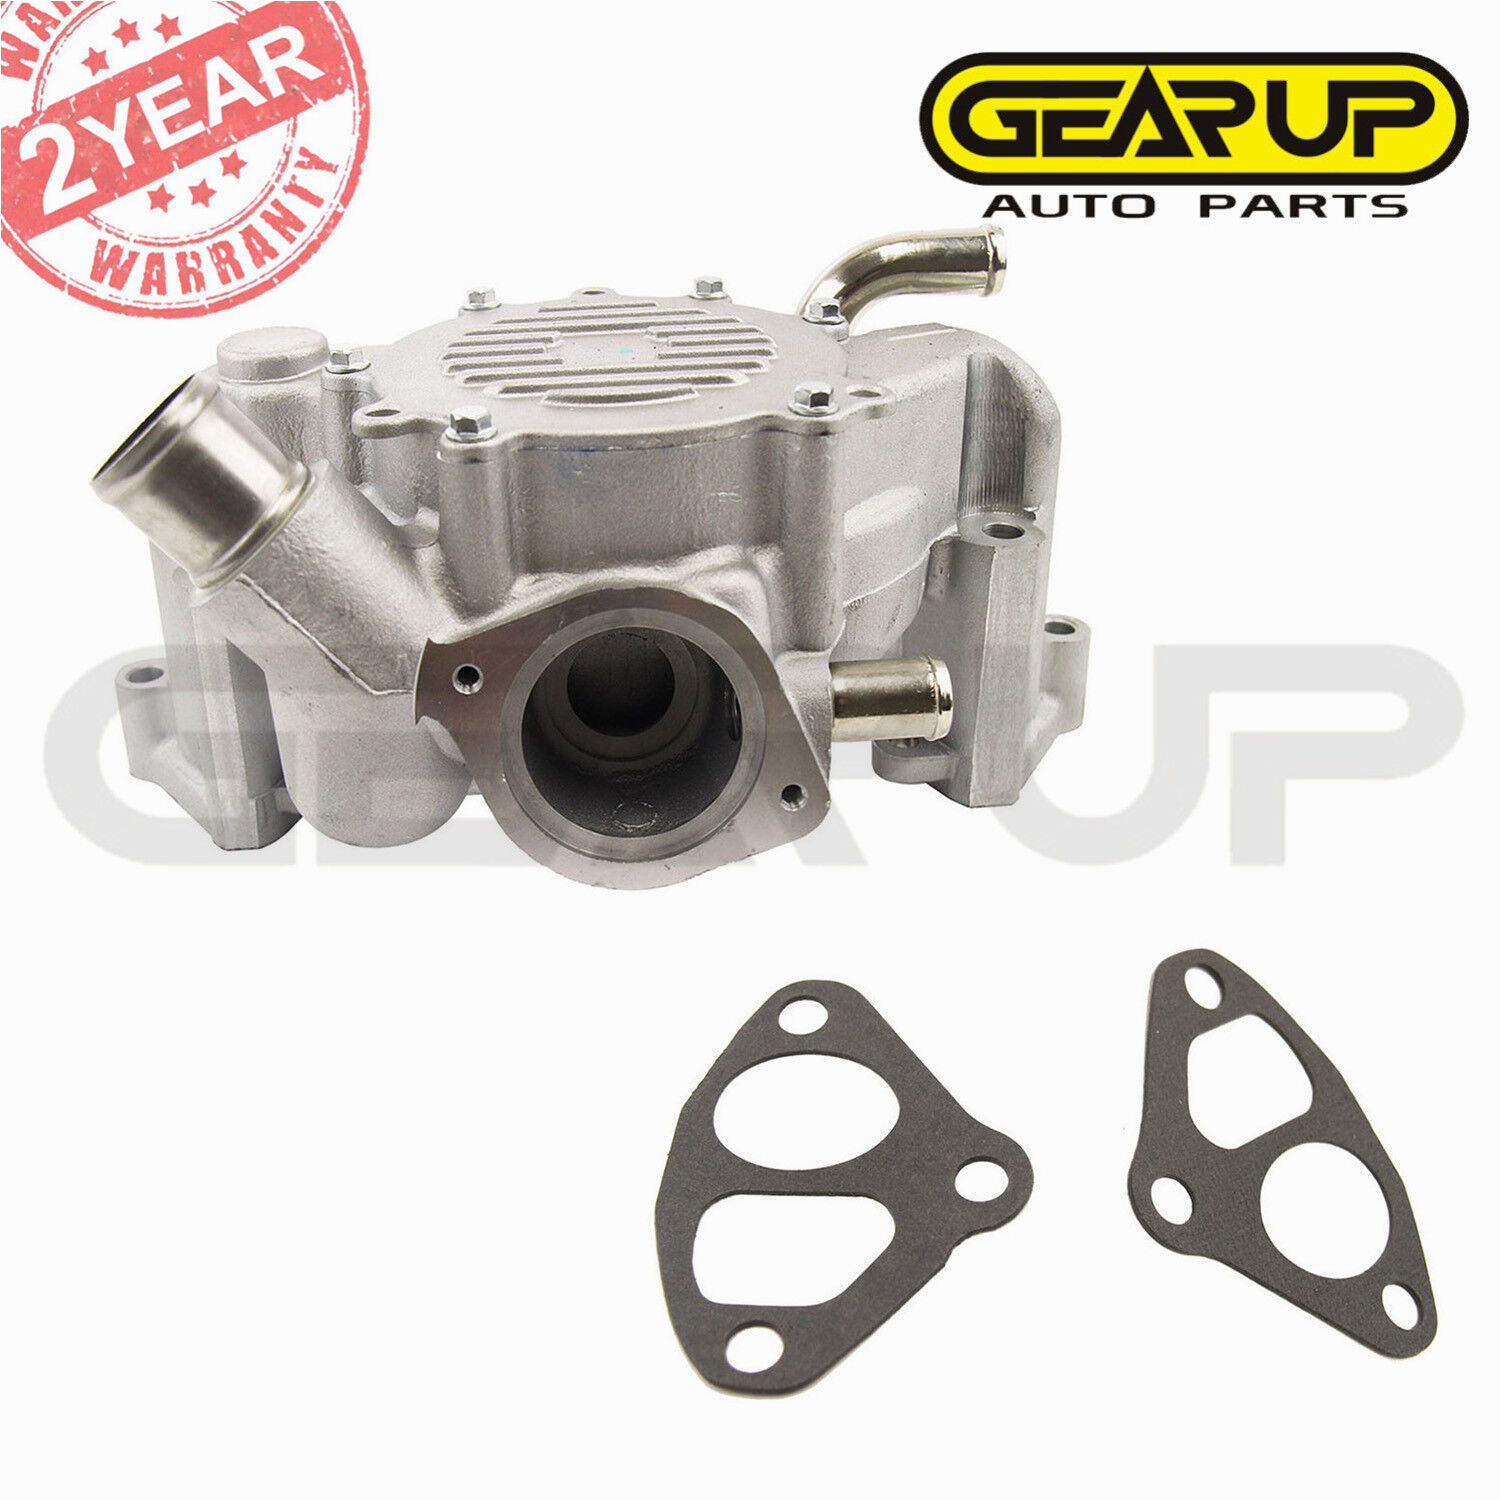 New Water Pump W Gasket For 1993 1994 1995 1996 Chevy Corvette 5.7L V8 AW5066